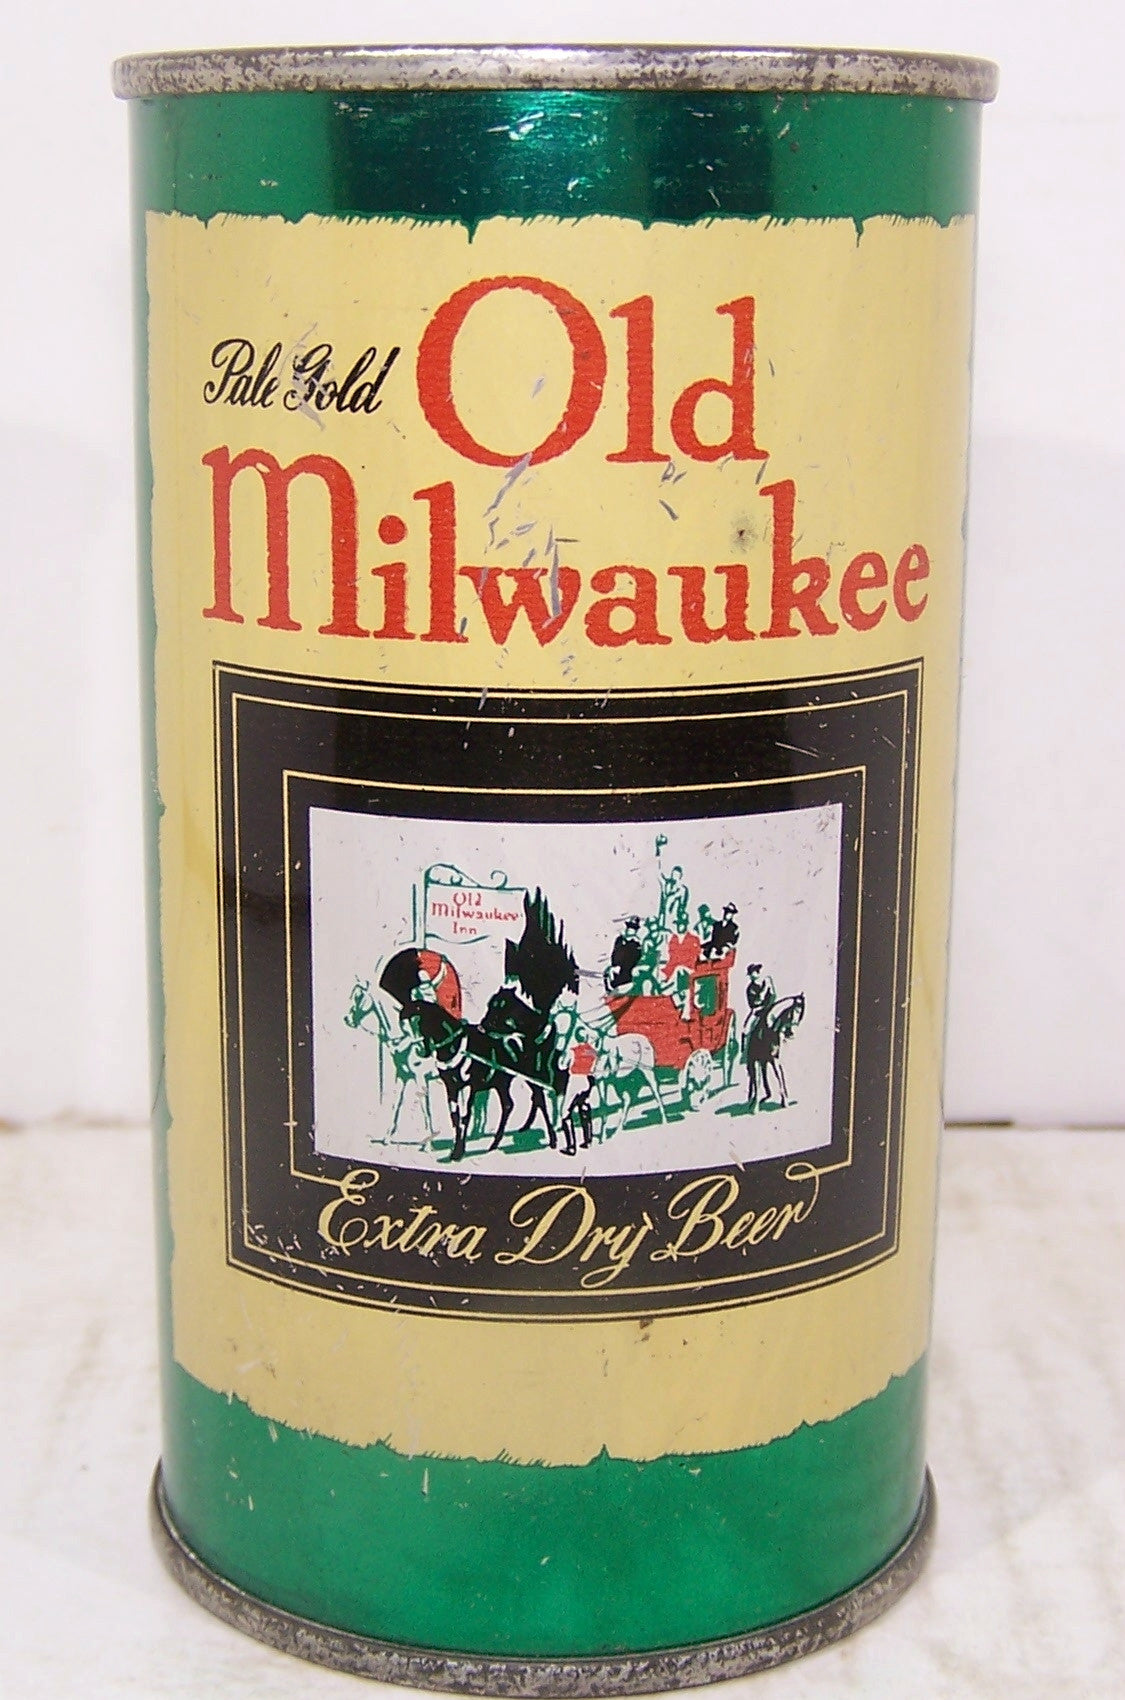 Old Milwaukee Extra Dry Beer, USBC 107-24, Grade 1- Sold on 2/14/15